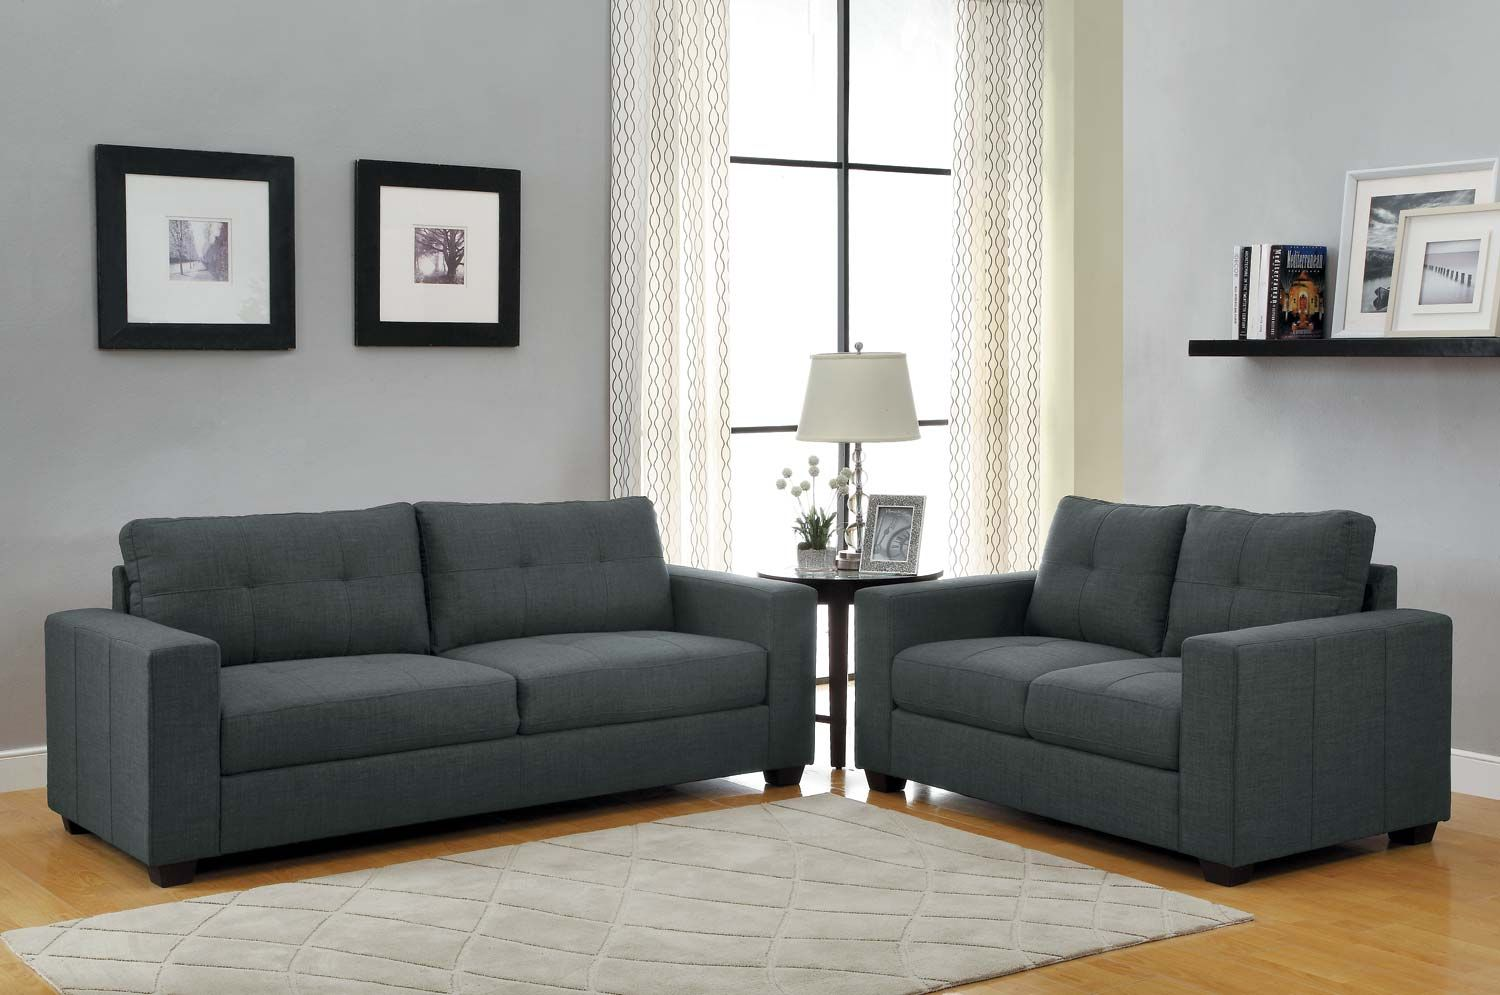 Homelegance Ashmont Sofa Set - Dark Grey - Linen Price: $918.00 ...